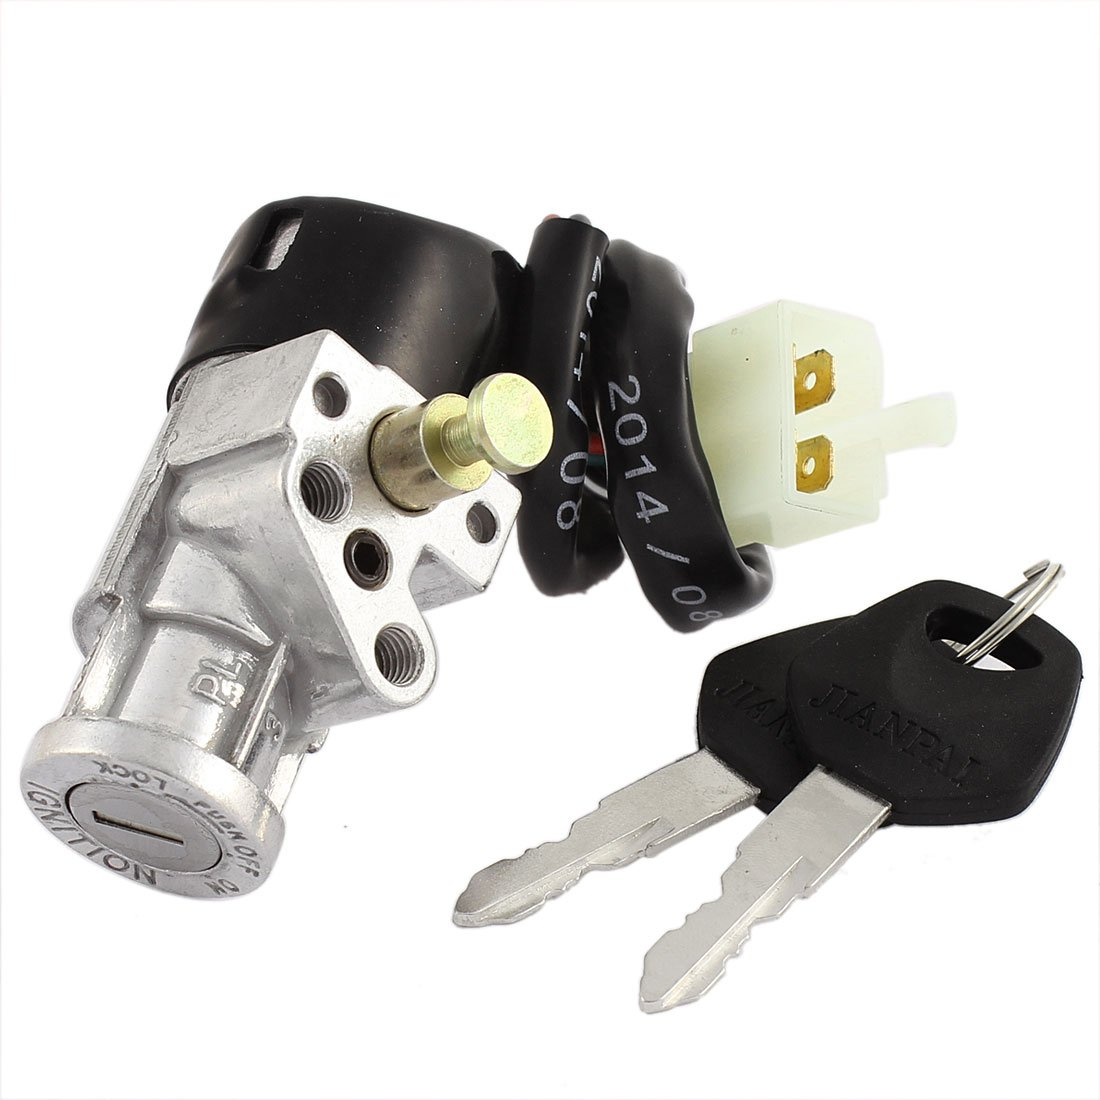 uxcell Motorcycle Ignition Switch Lock w Keys a15070100ux0720